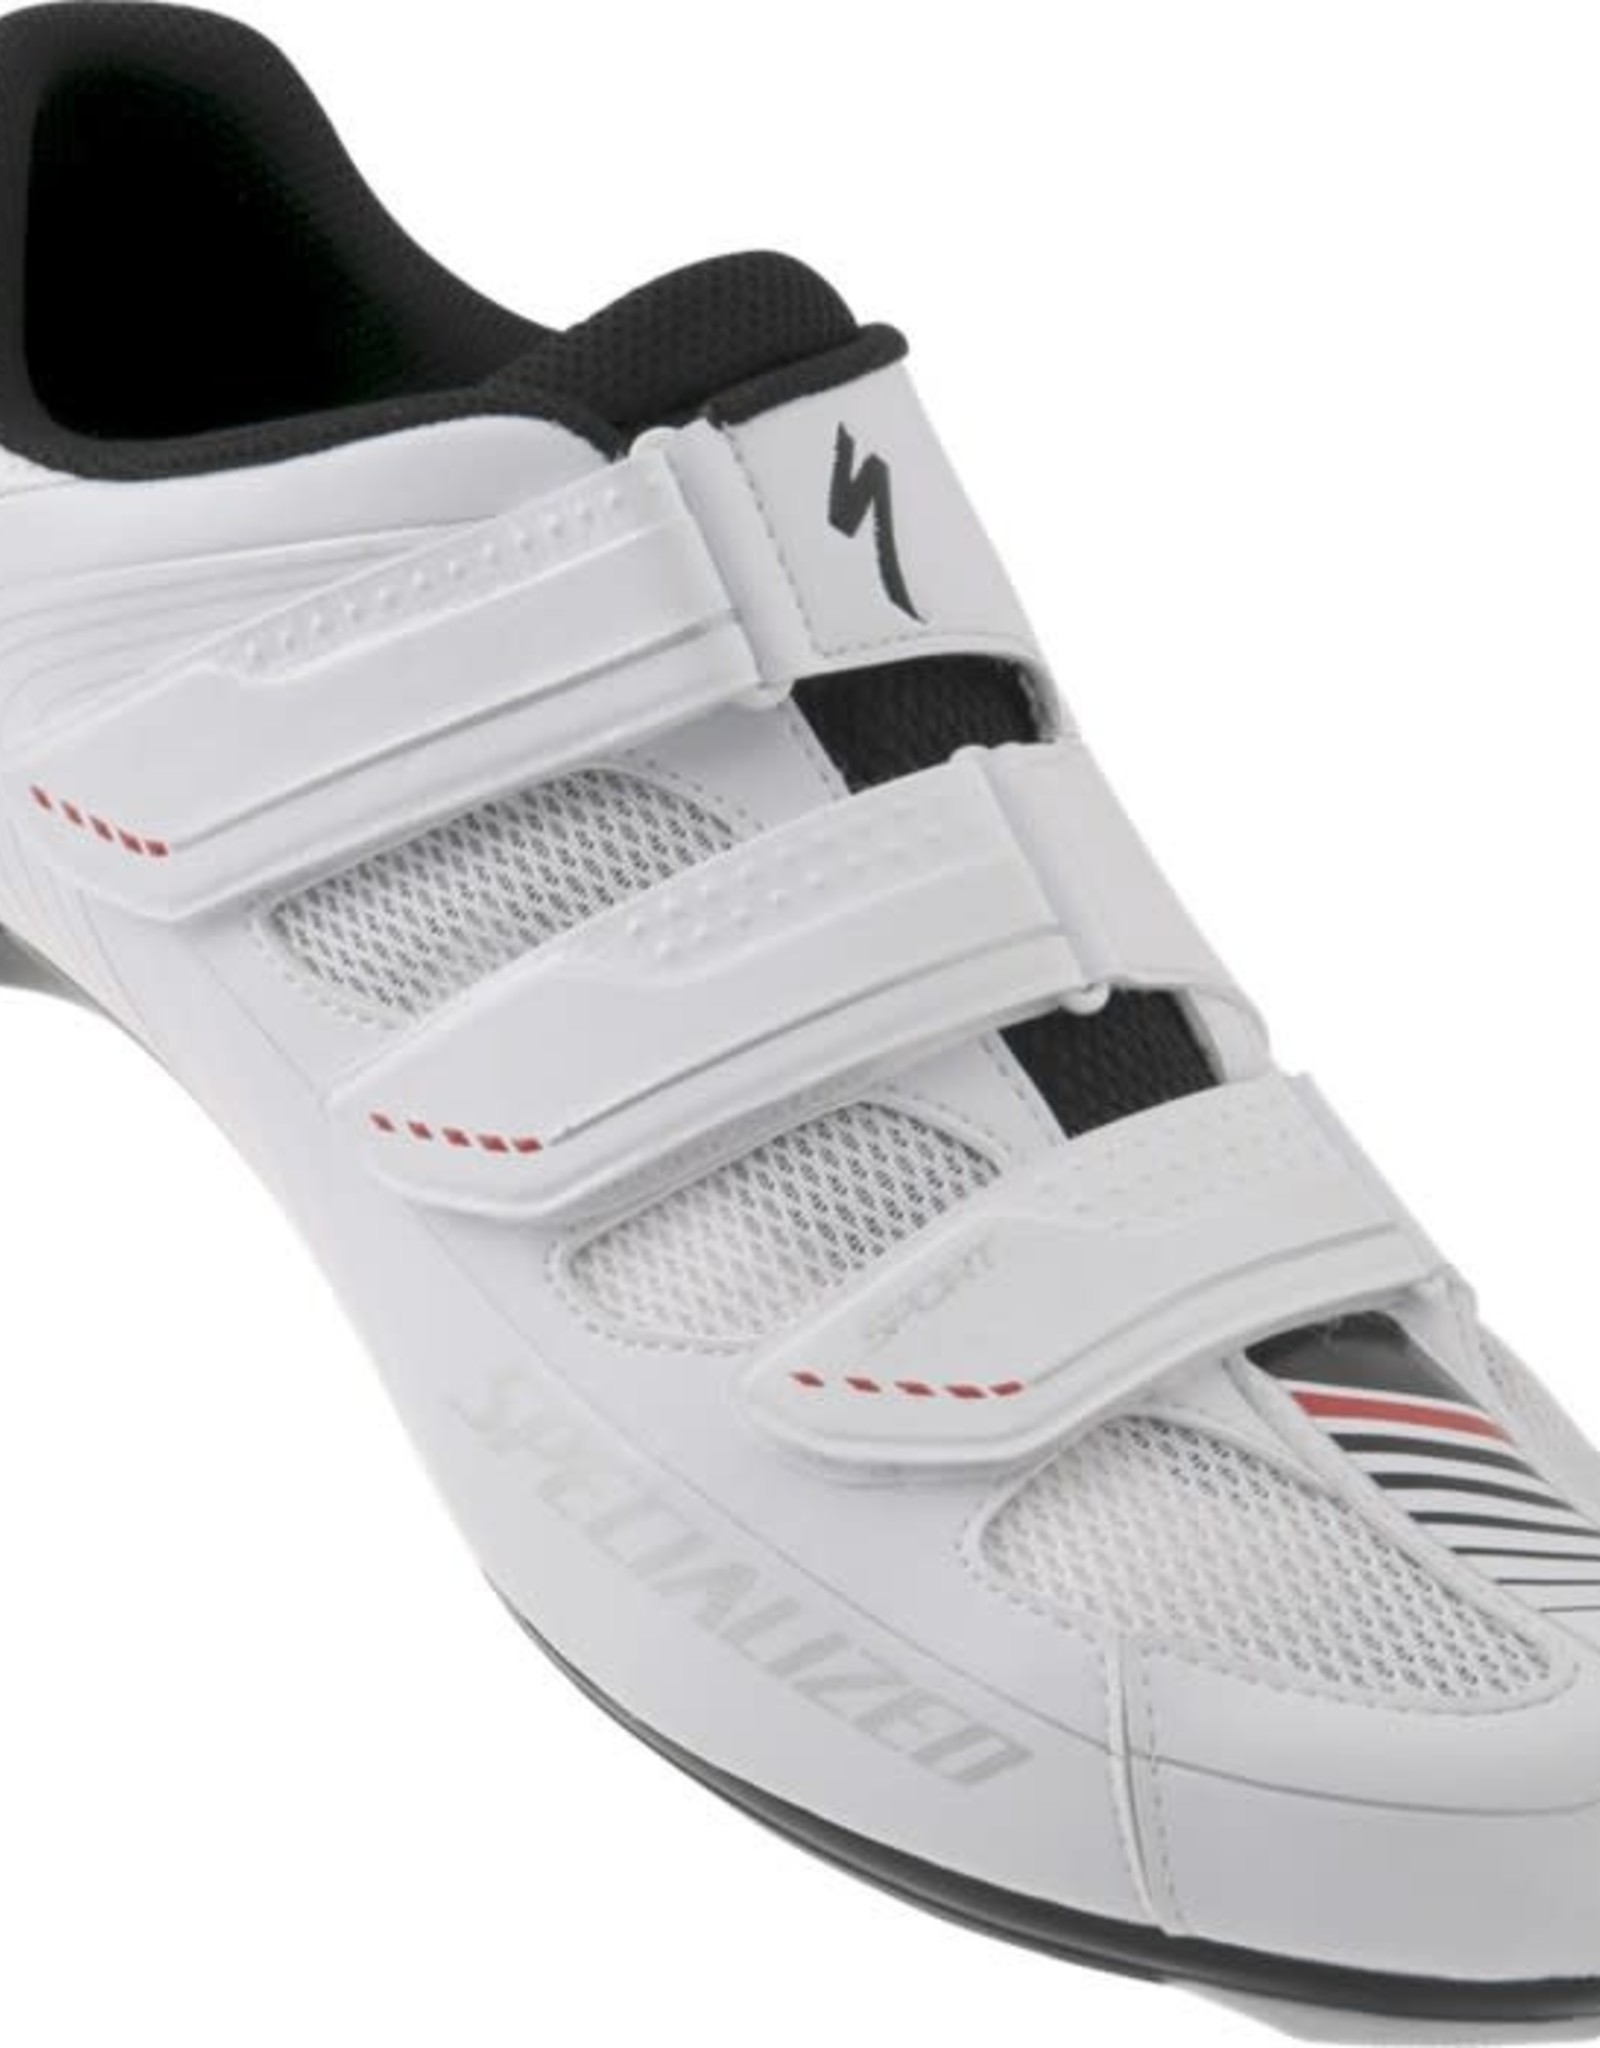 SPECIALIZED Specialized SPORT ROAD SHOE 40 WHT/SIL